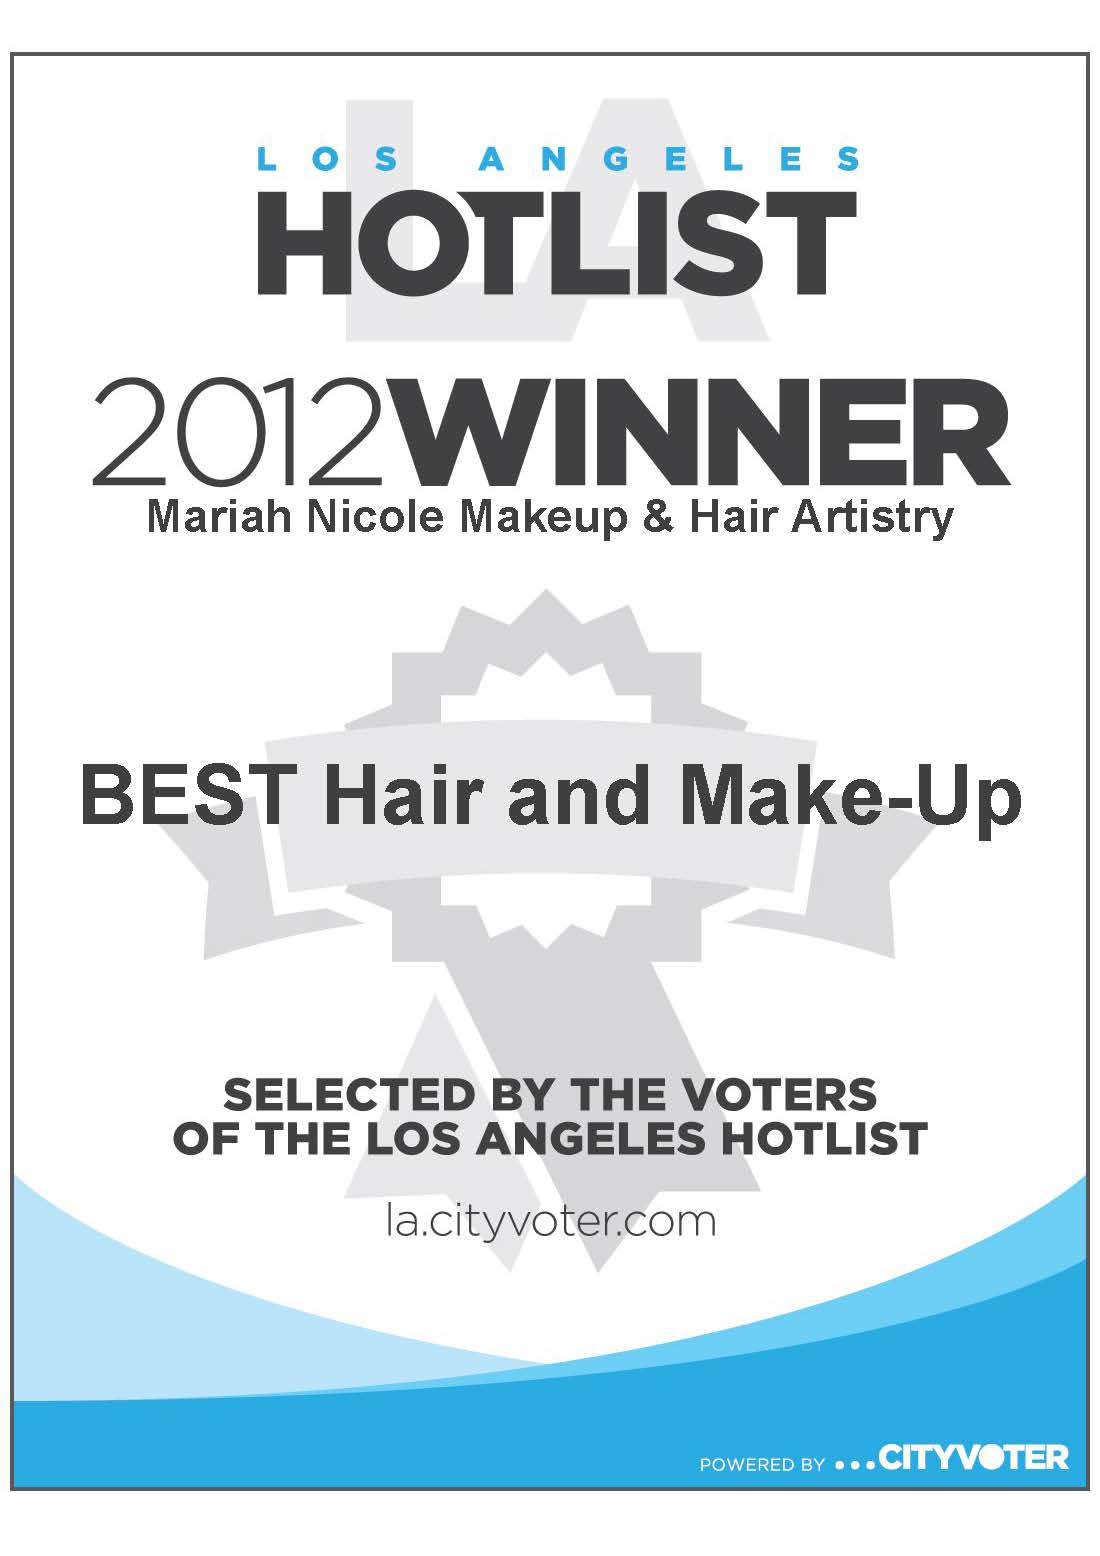 THANK YOU to ALL our friends and clients who VOTED for us this year! Our team won #1 Best Wedding Makeup and Hair in LA for 2012 by myFOXla.com HOT List.